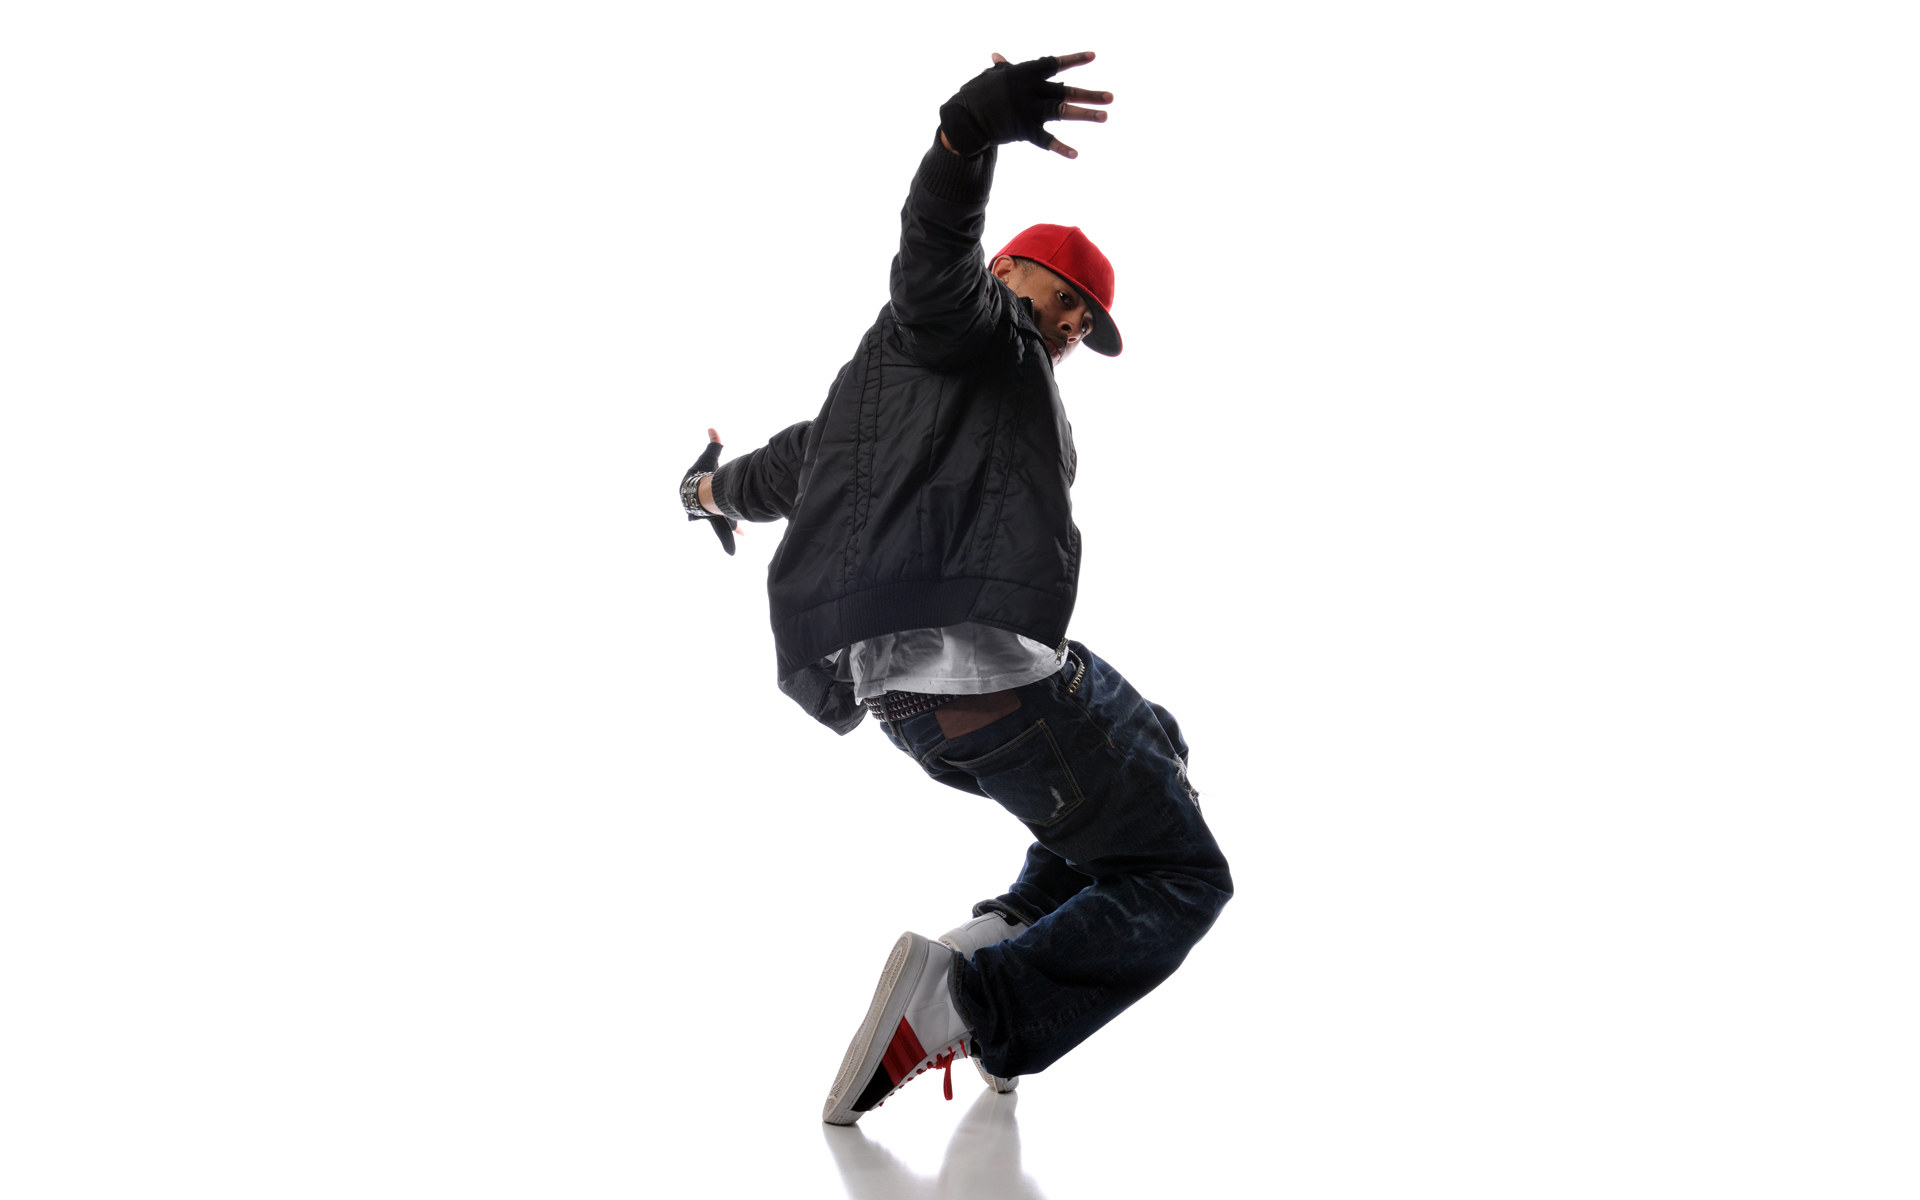 Hip Hop People : Cool and Rodk People, Break Dancing 1920*1200 ...: www.wallcoo.net/photography/hip_hop_styles/wallpapers/1920x1200...